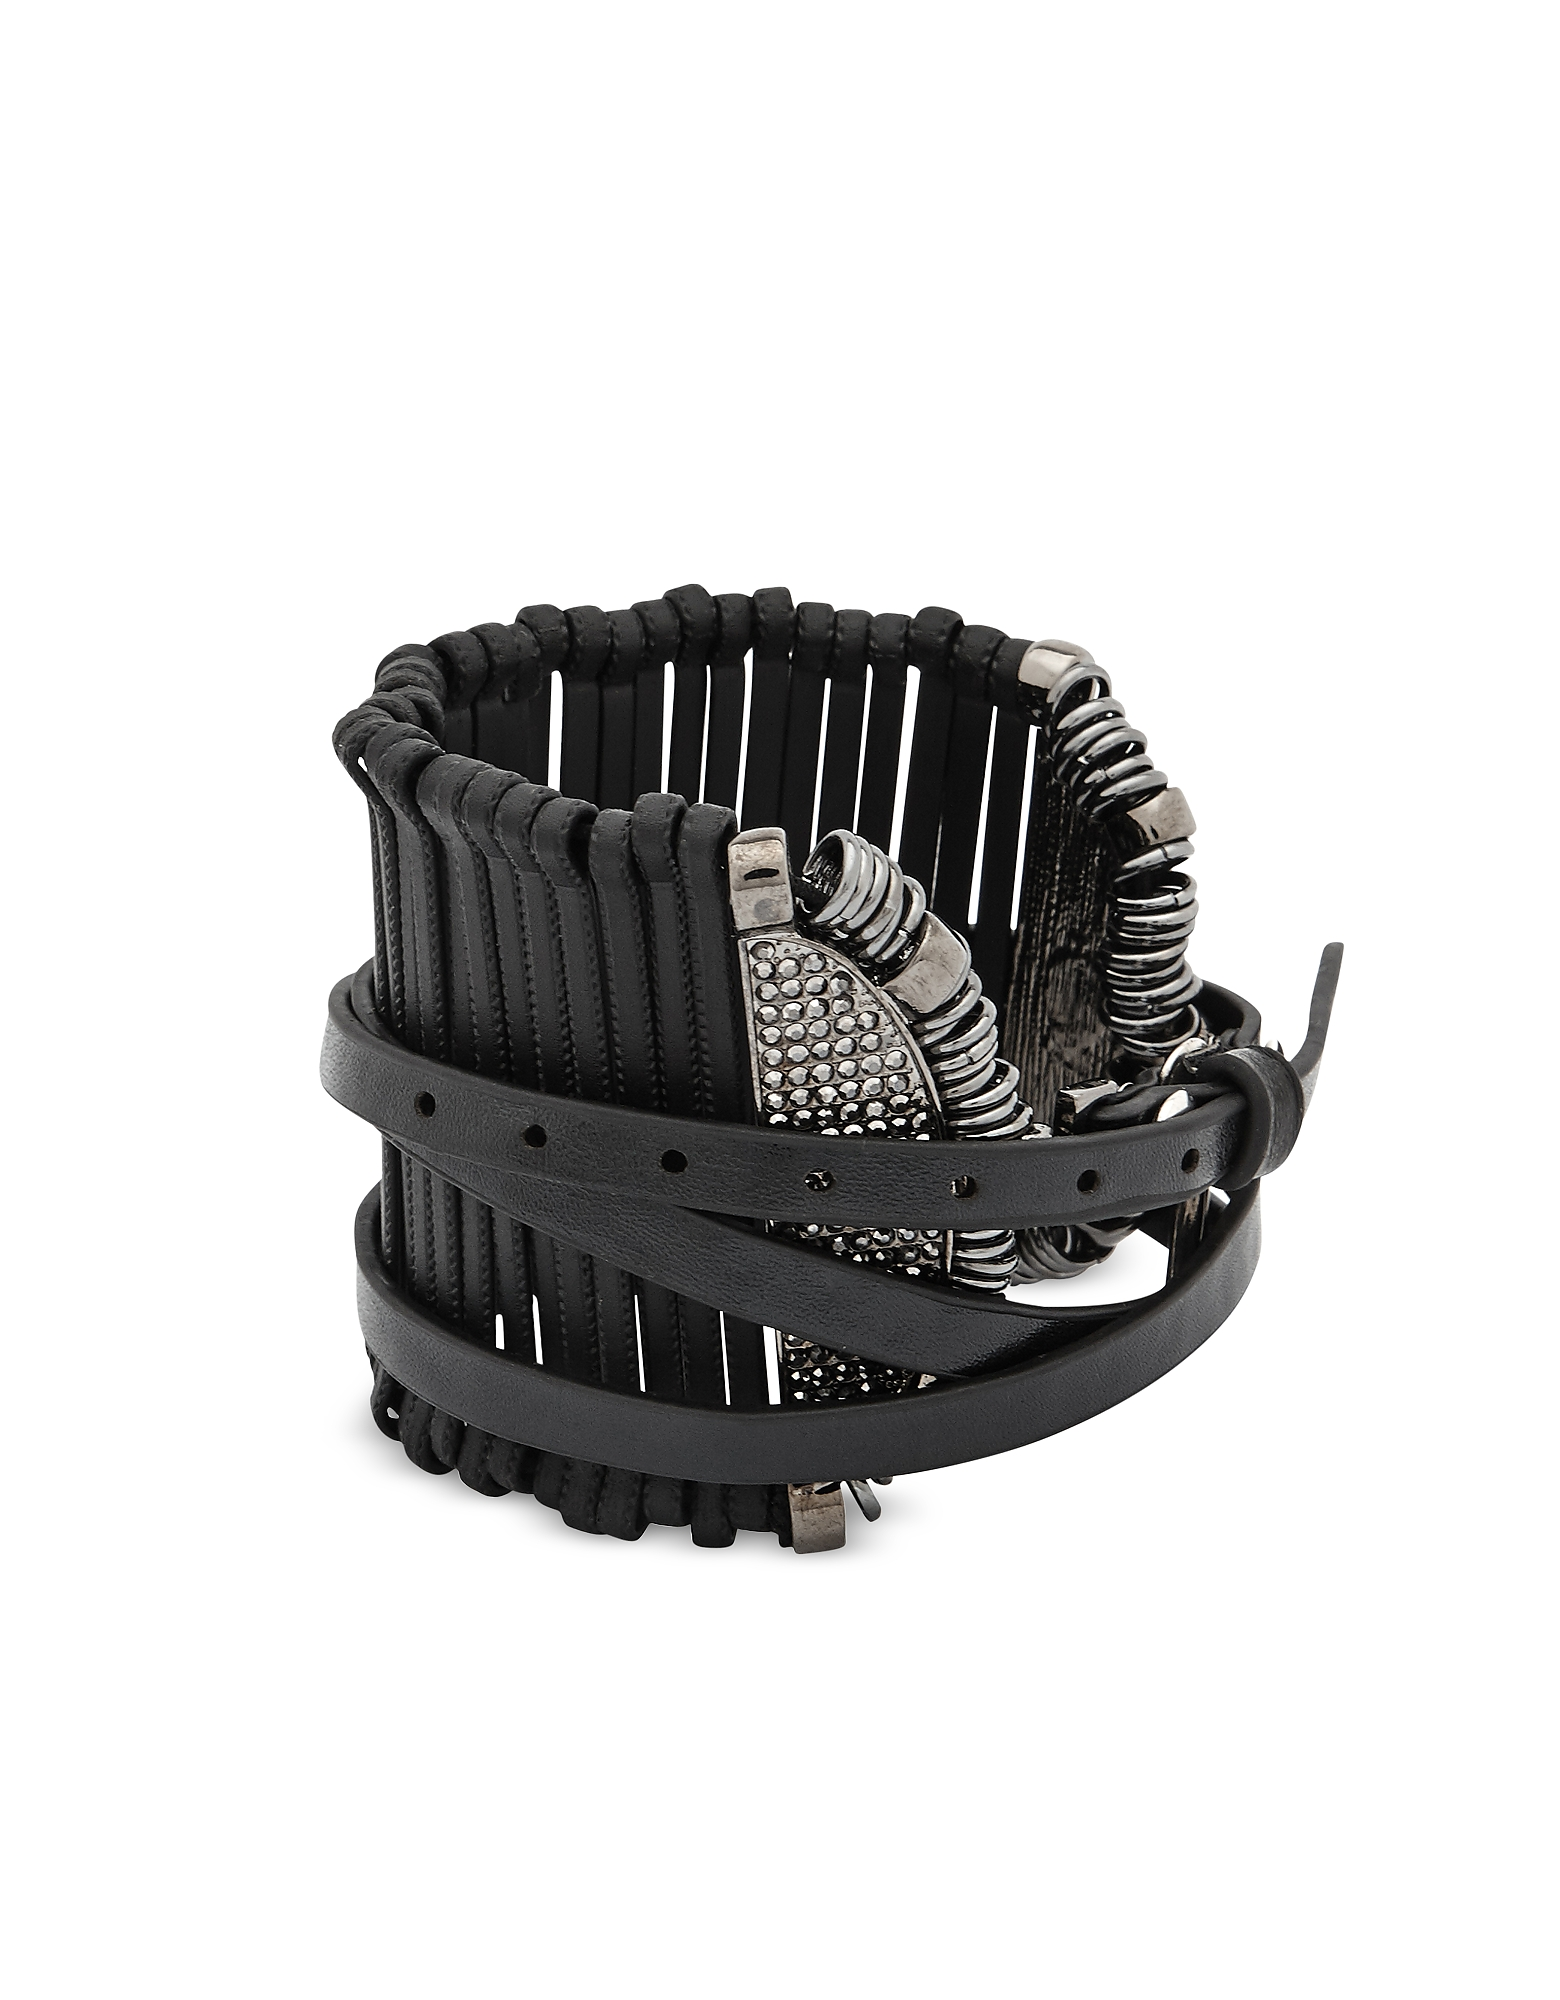 Federica Tosi Bracelets, Stick Leather and Metal Bangle